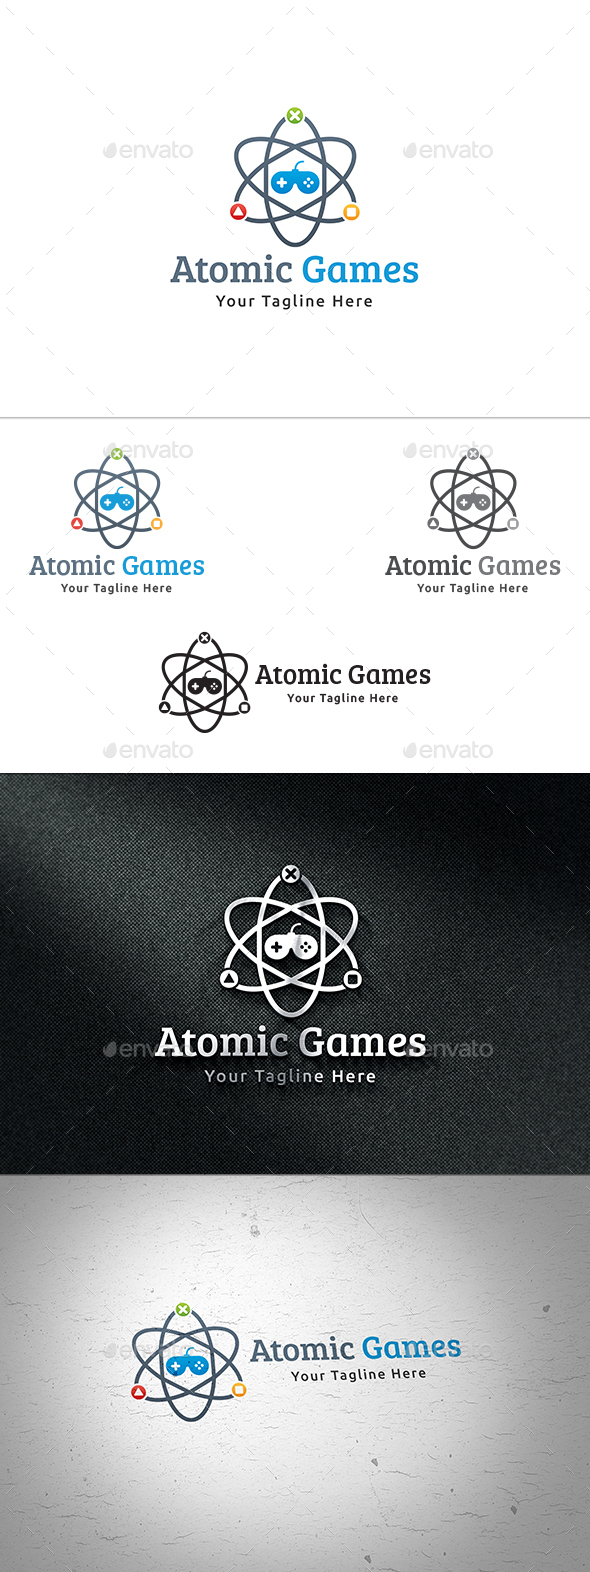 Atomic Games Logo